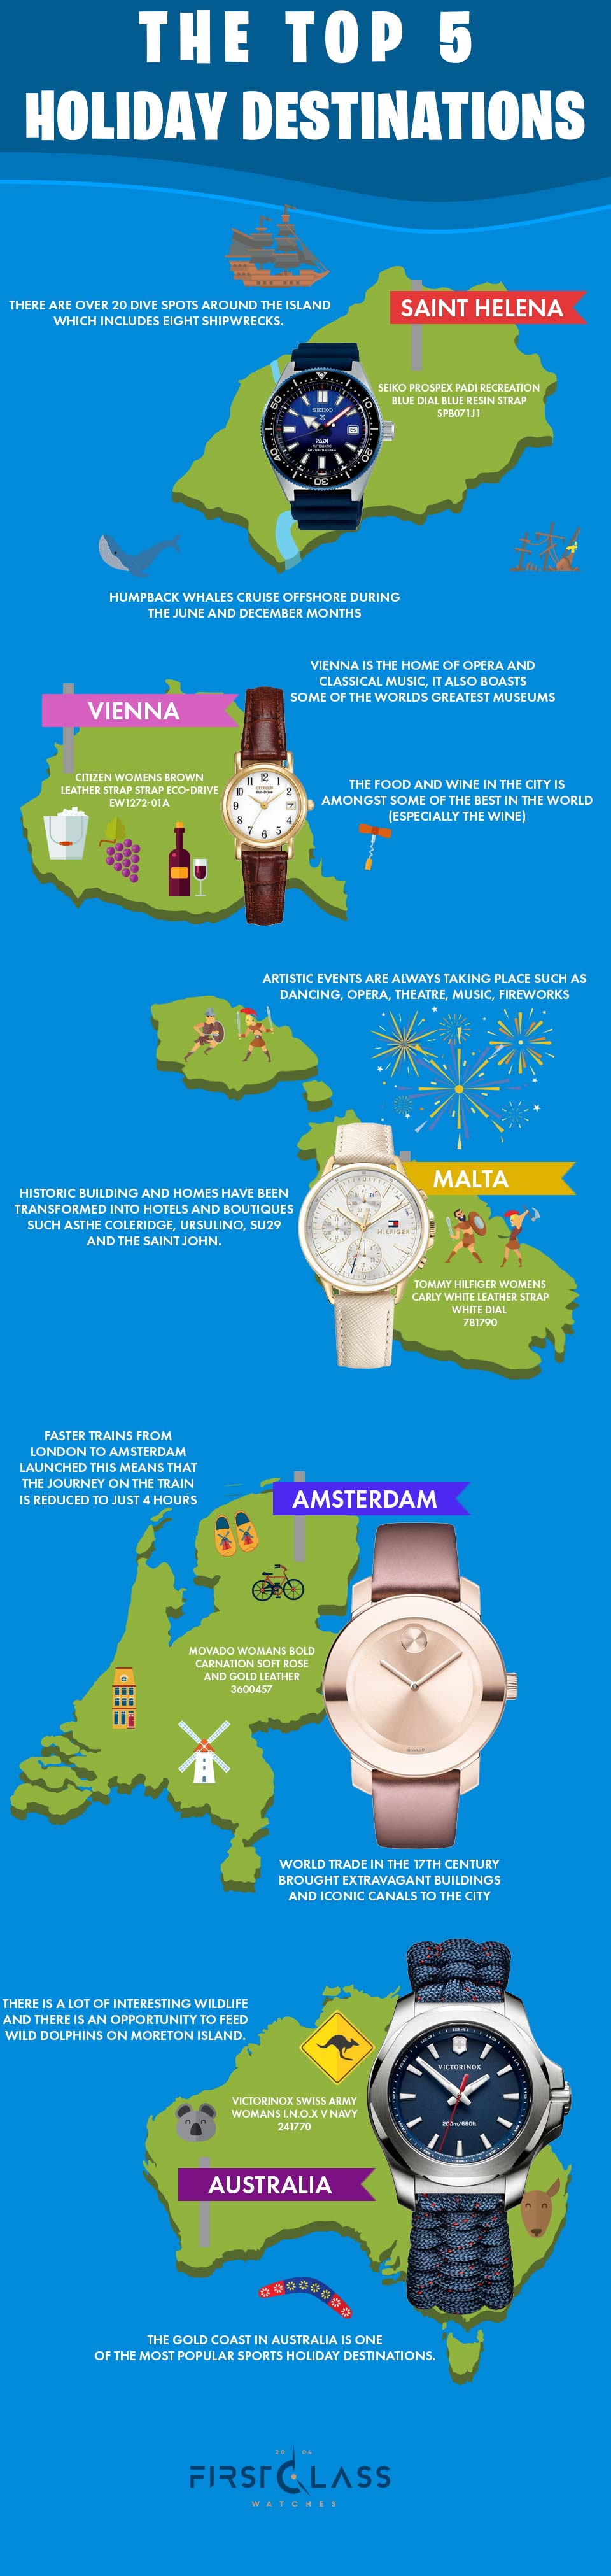 Top-5-holiday-destinations-infographic